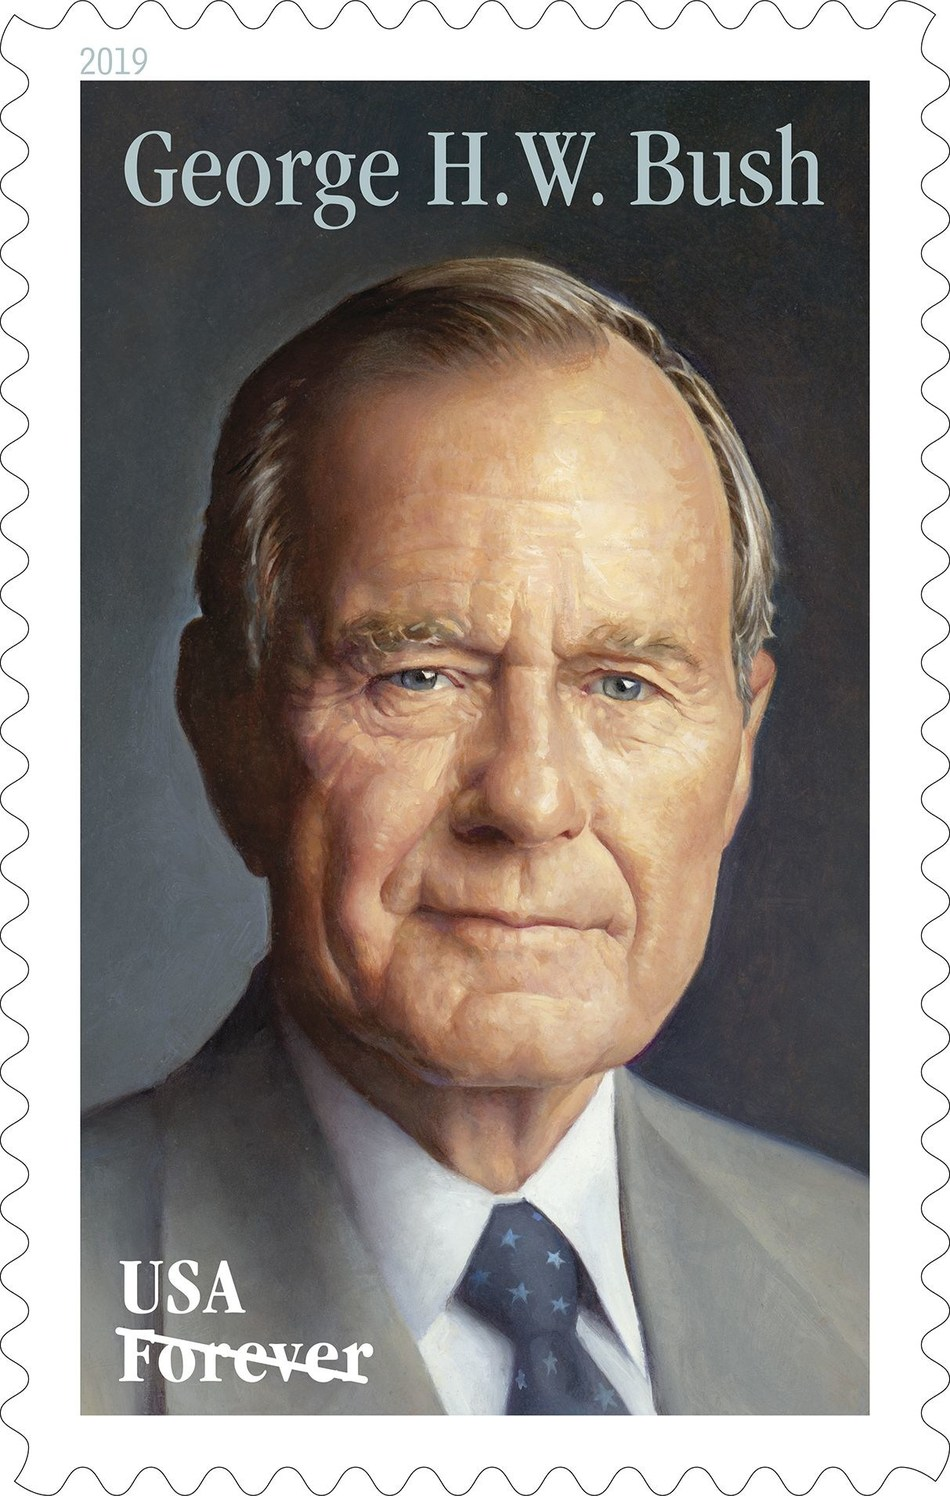 George H.W. Bush Forever stamp on sale today at Post Office locations nationwide and online at usps.com/shop.